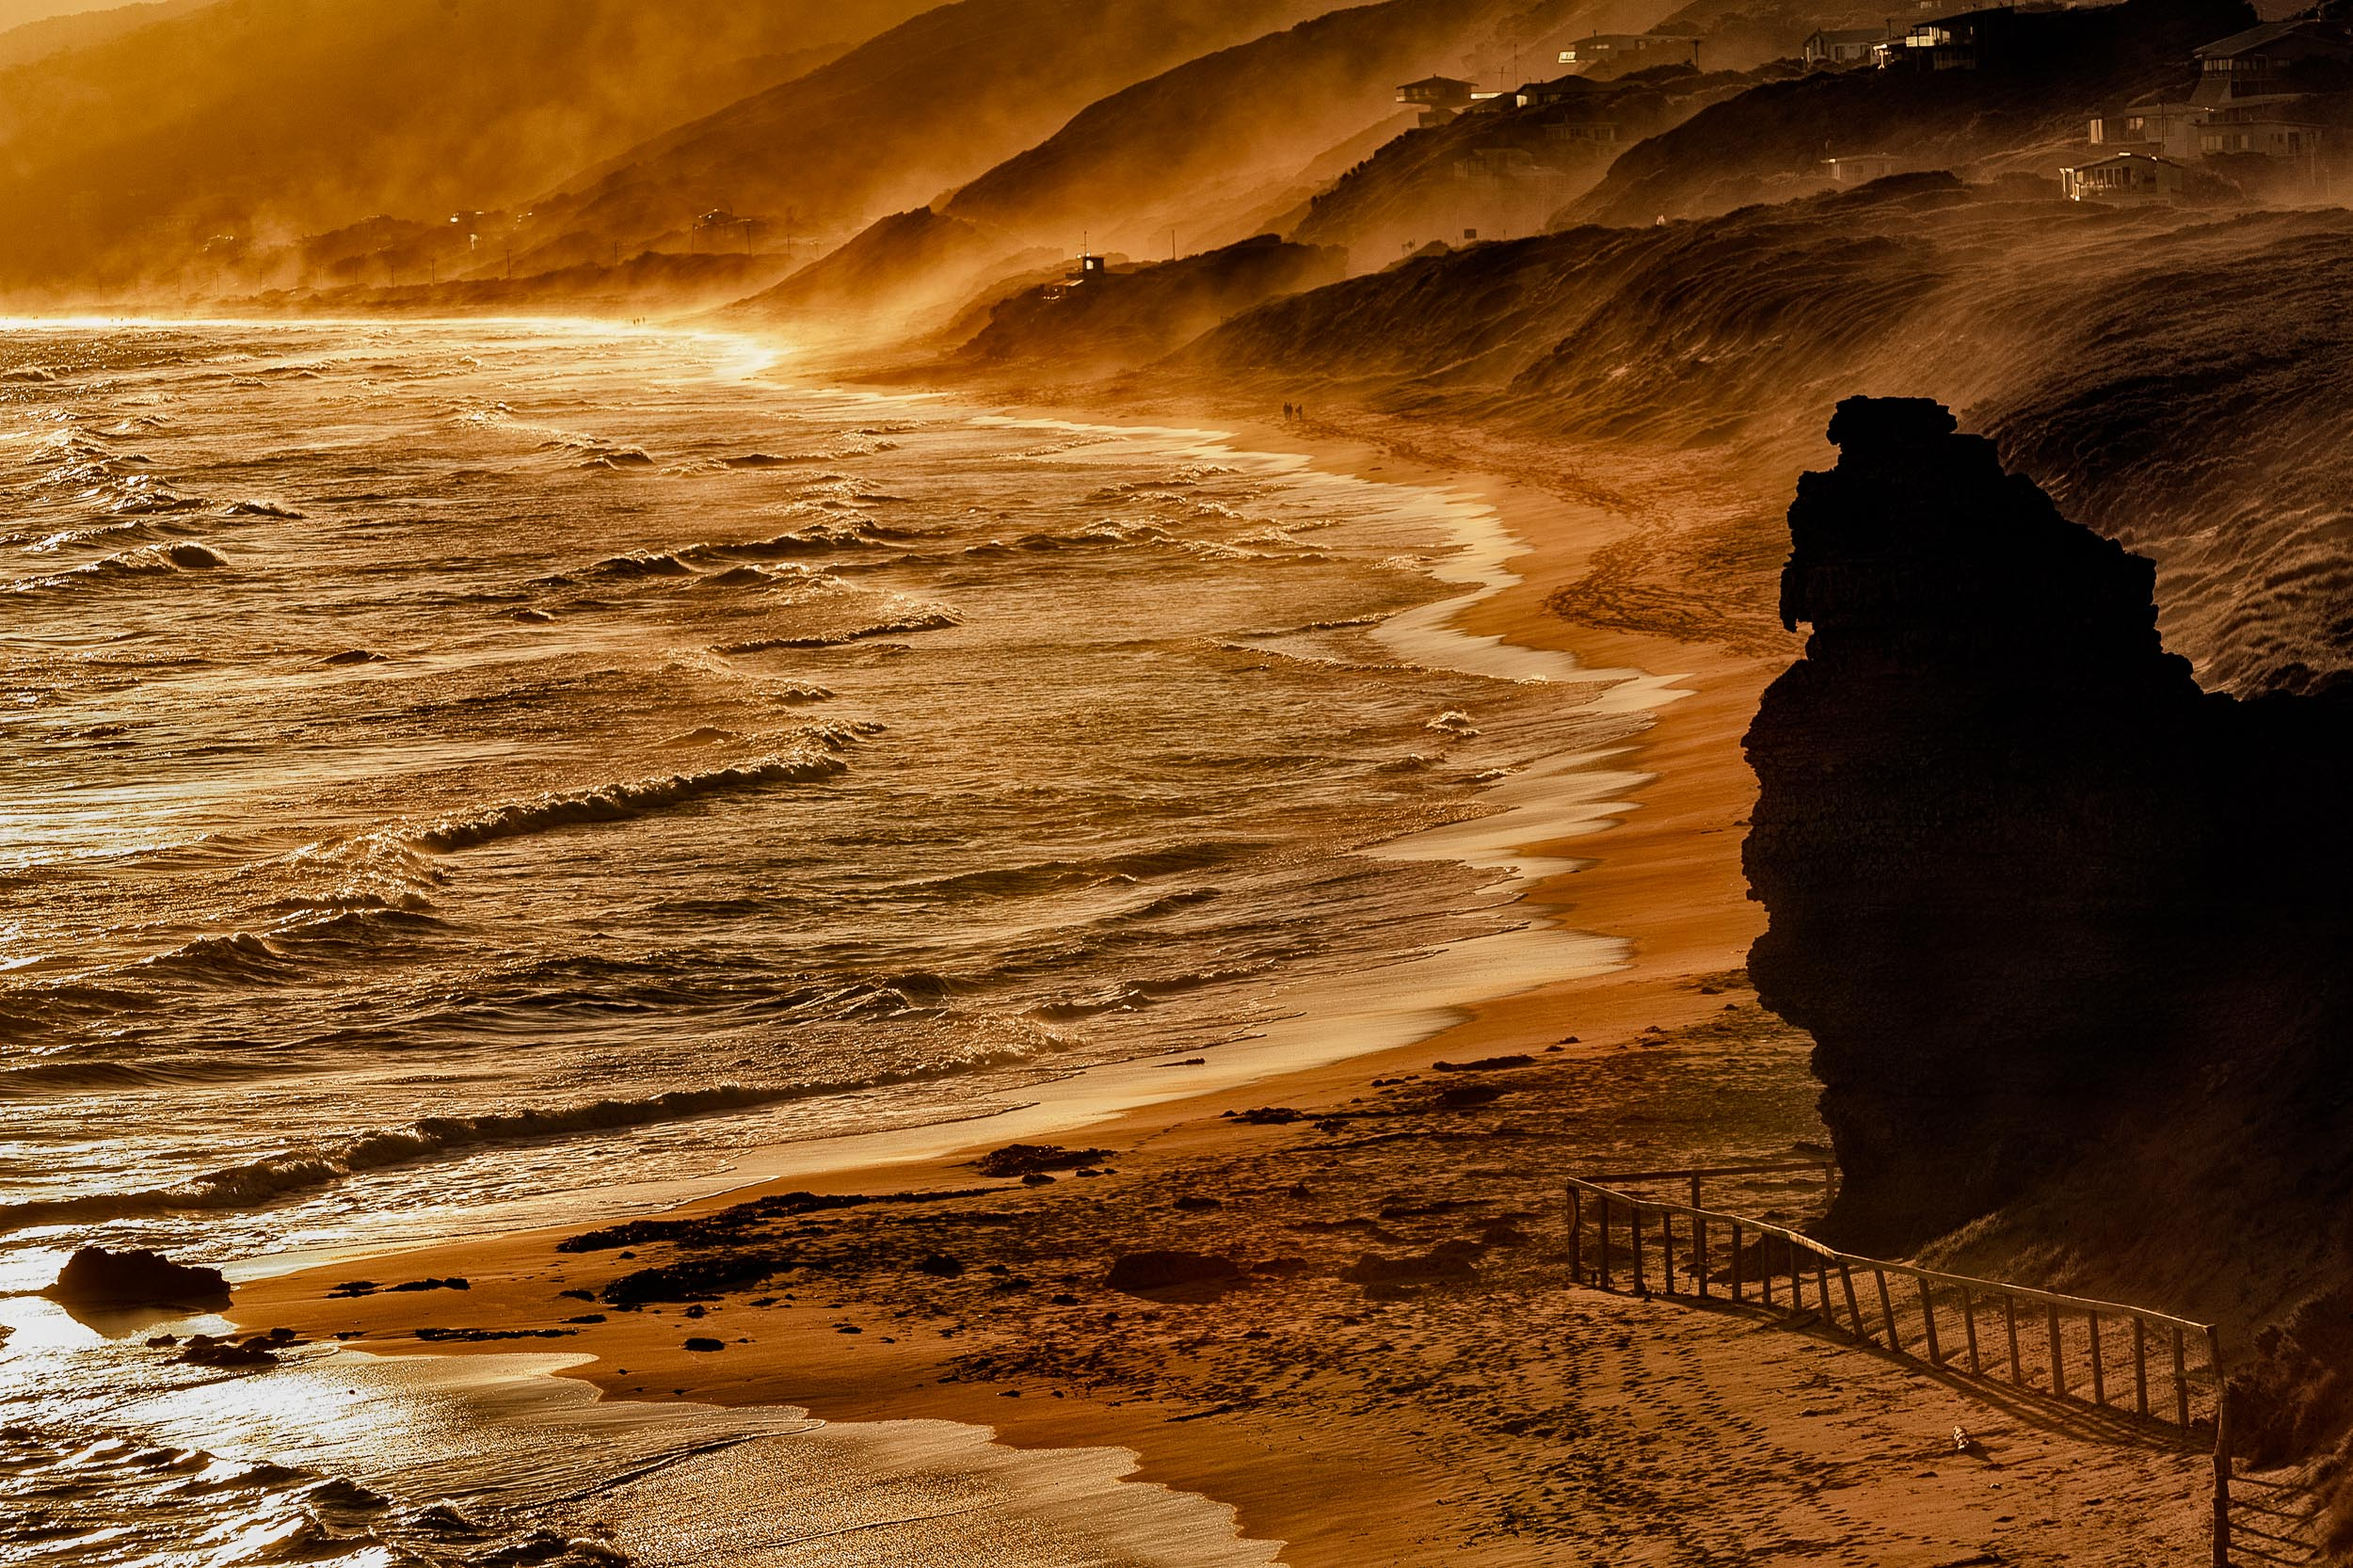 Surf and mist    meet along the    beach at sunset    at    Aireys Inlet    along the    Great Ocean Road    in Australia.